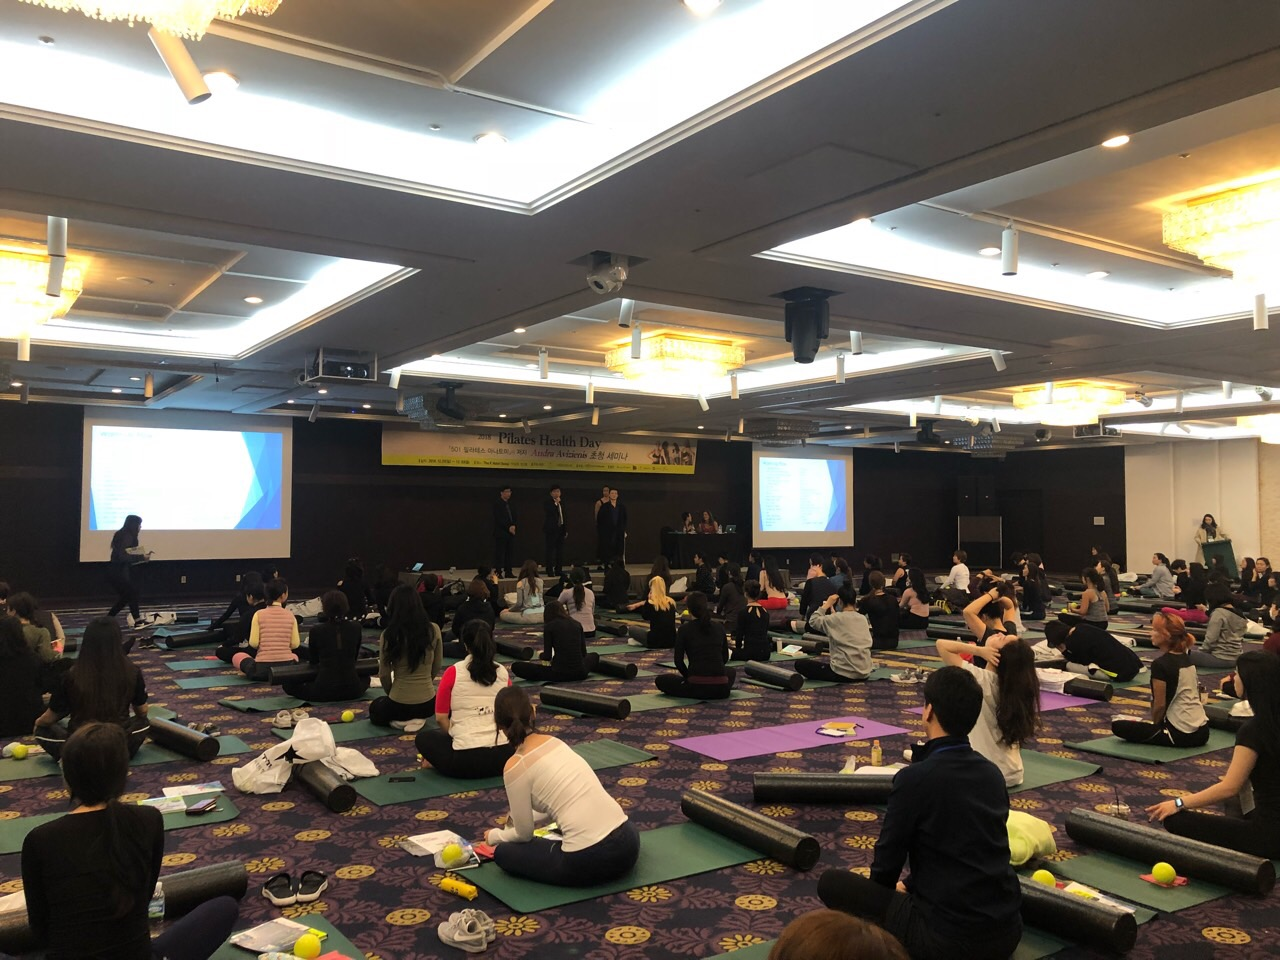 [운동재활팀] 2018 Pilates Health Day